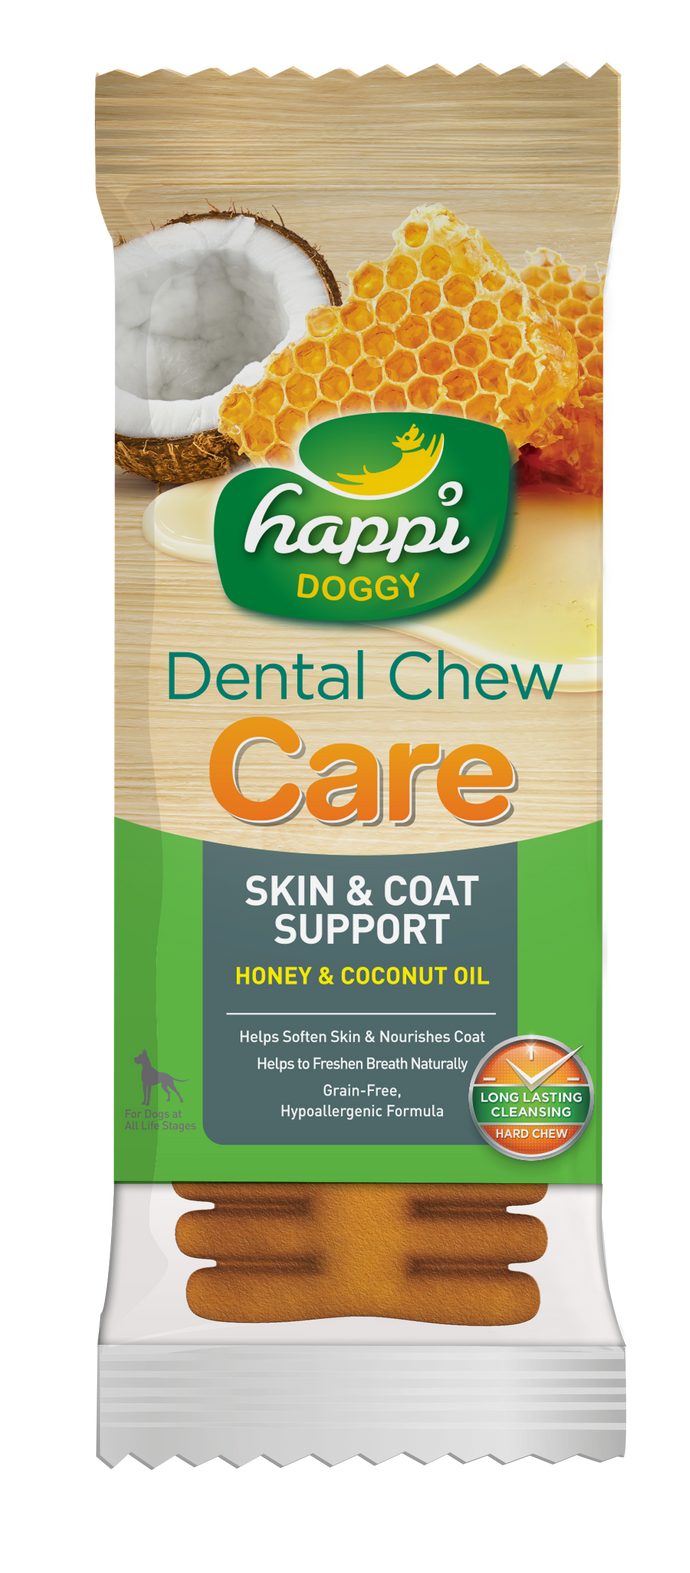 Happi Doggy Dental Chew Care (Skin & Coat Support) 4